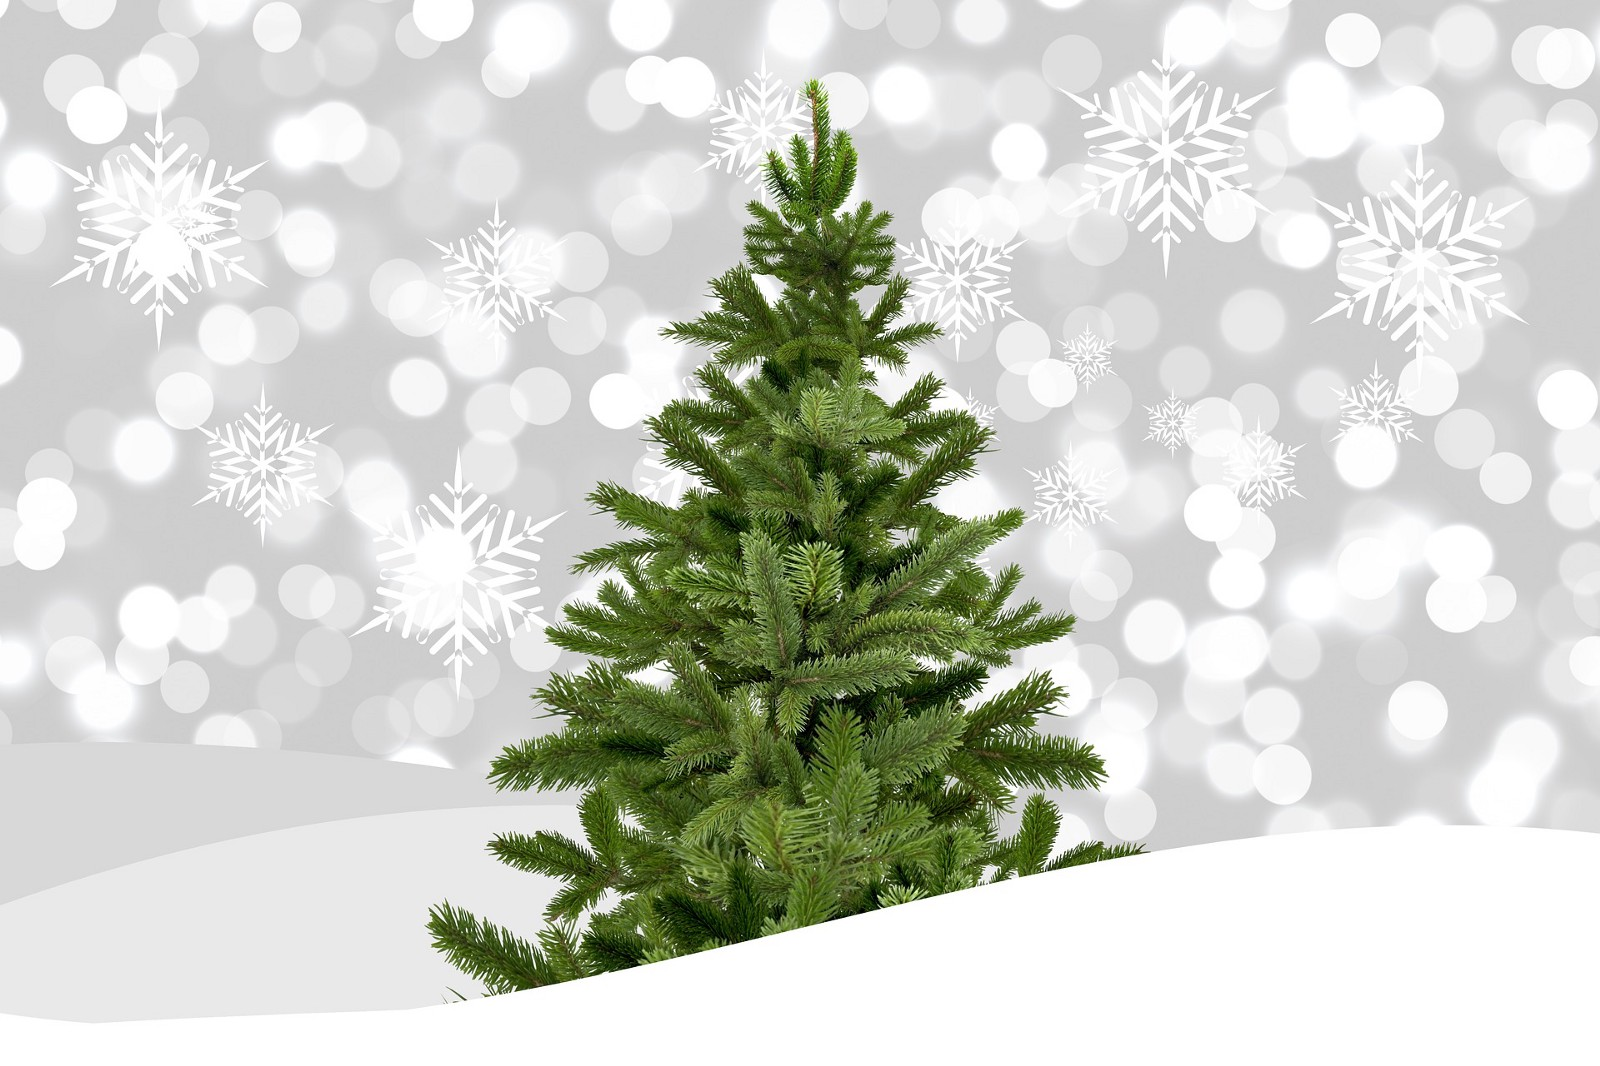 Curbside Christmas tree pick-up slated for Jan. 8 and Jan. 15